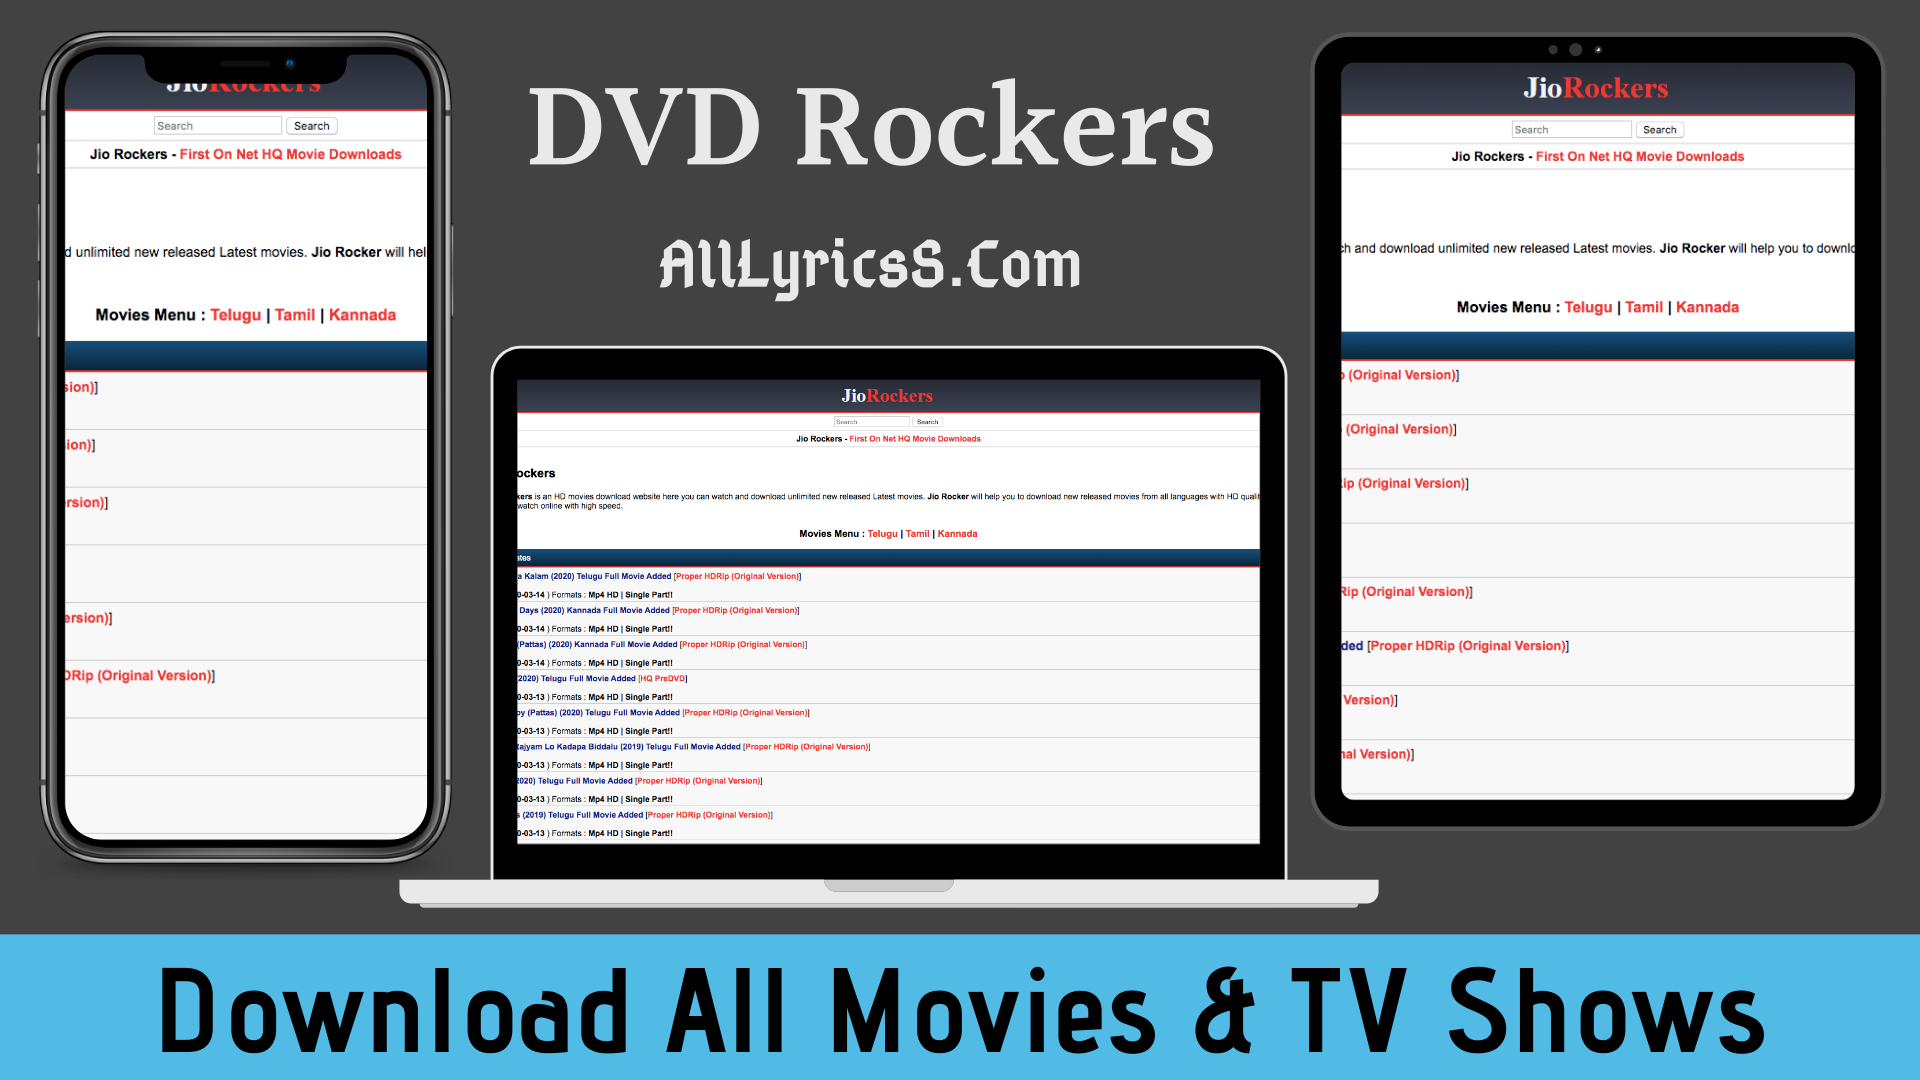 DvdRockers.com 2020 Download All Tamil Telugu Movies & TV Shows